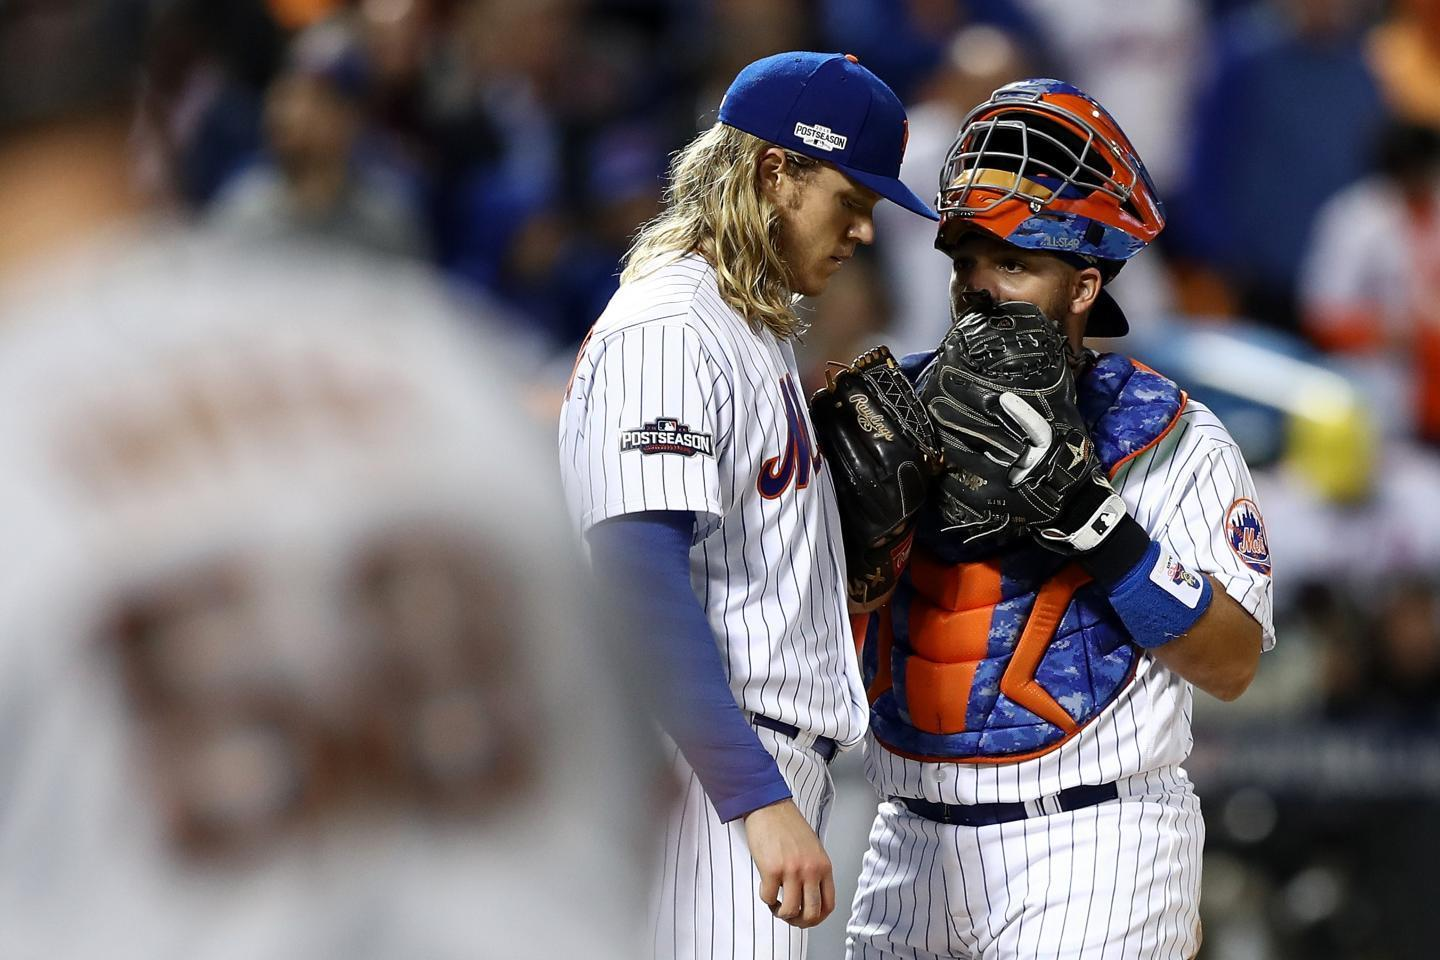 Rene Rivera will catch Noah Syndergaard a little too late